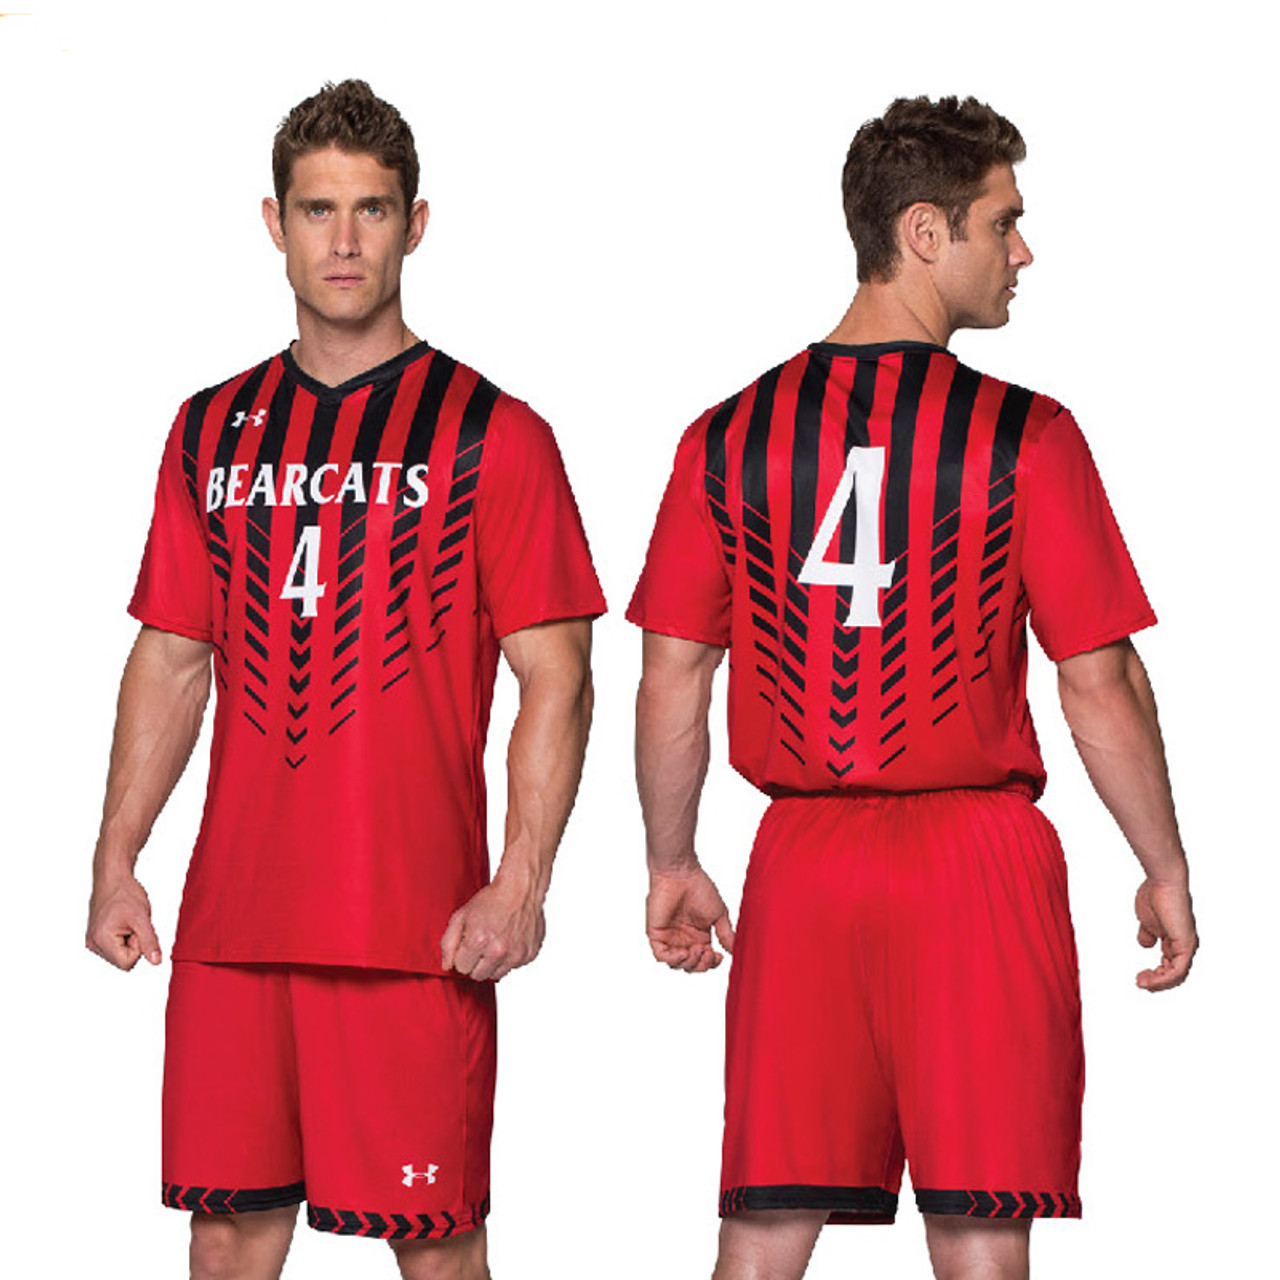 sports shoes a7837 63dec Under Armour Men's Armourfuse Soccer Jersey - Calcio